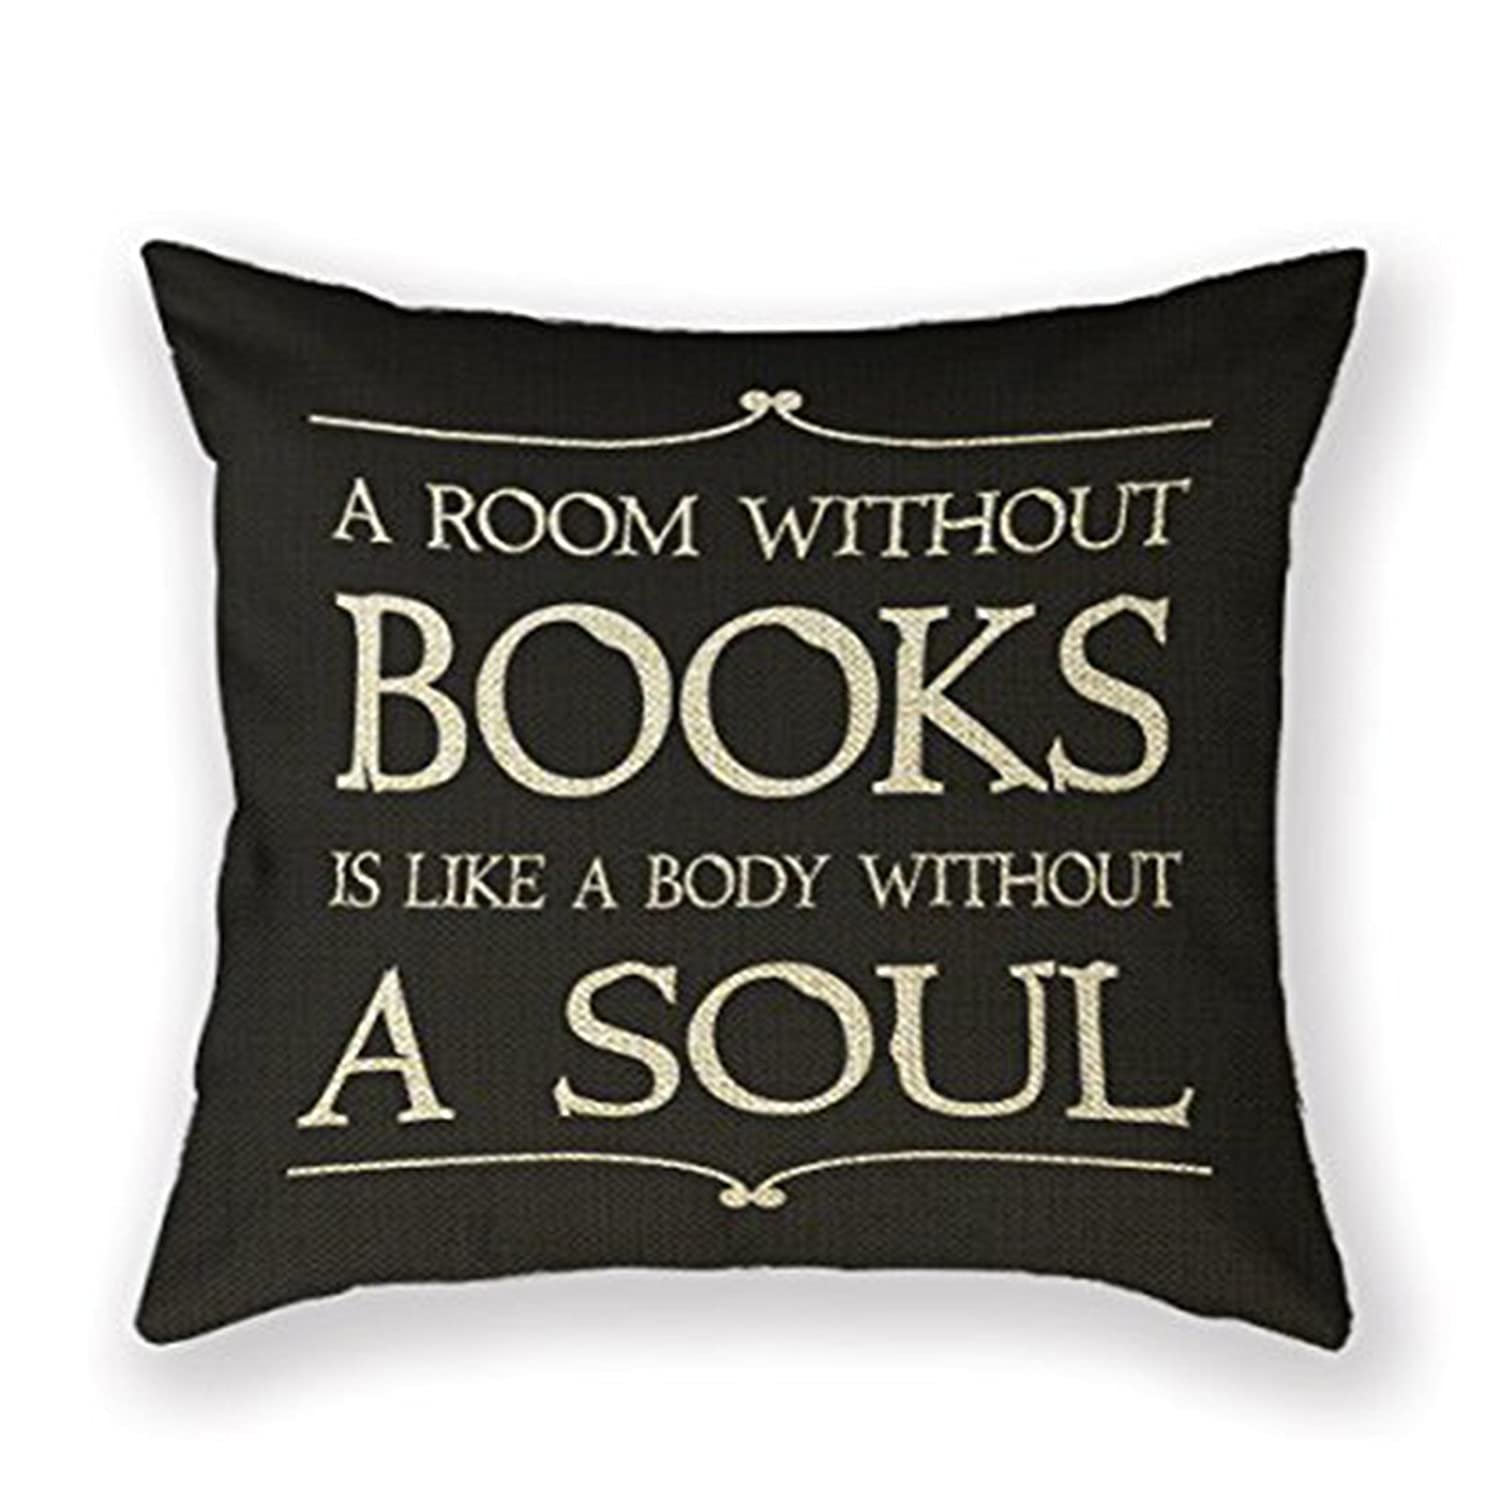 Book Lover Pillow Cover ONLY $1.72 SHIPPED!